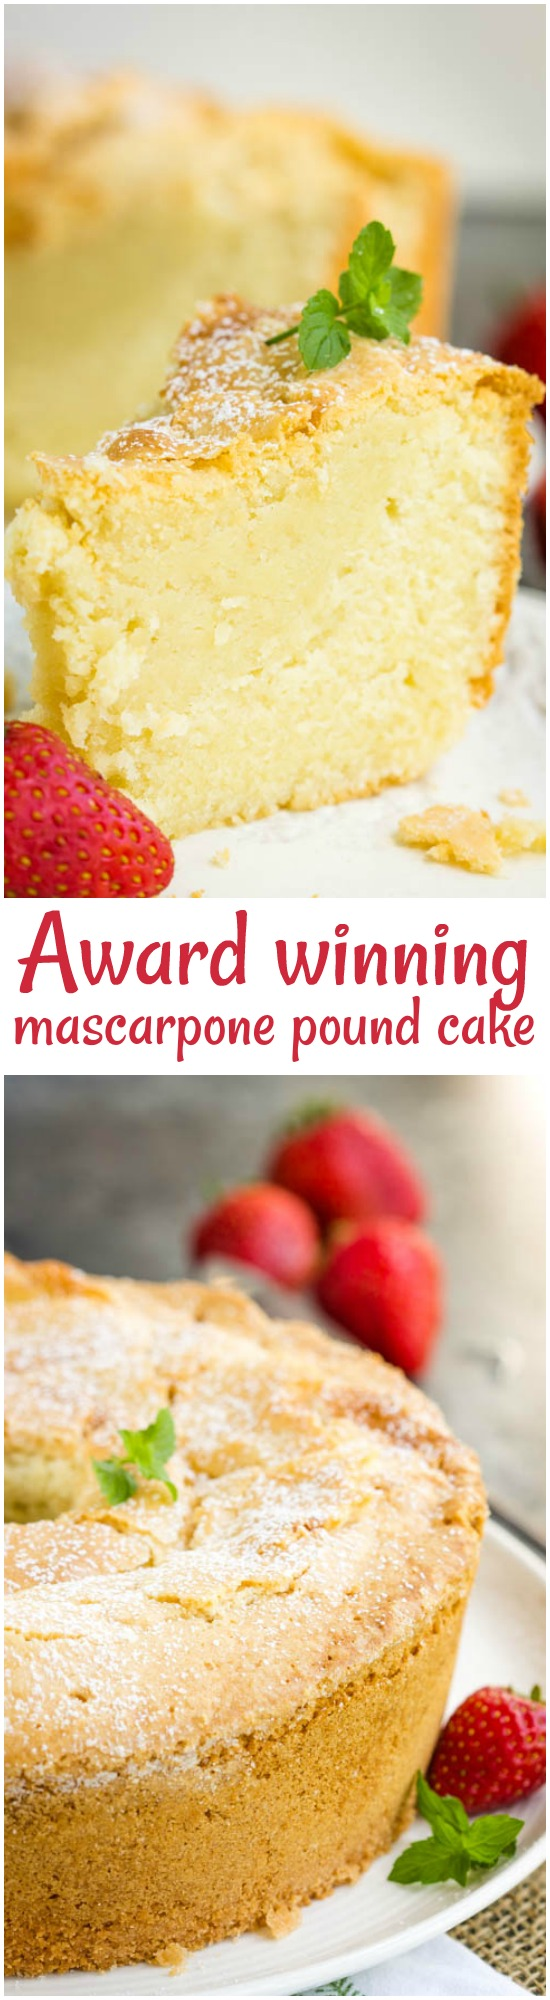 Award-winning Mascarpone Pound Cake is a dense, buttery, and moist pound cake recipe with a fine, tender crumb and a brown, crusty outside and top.